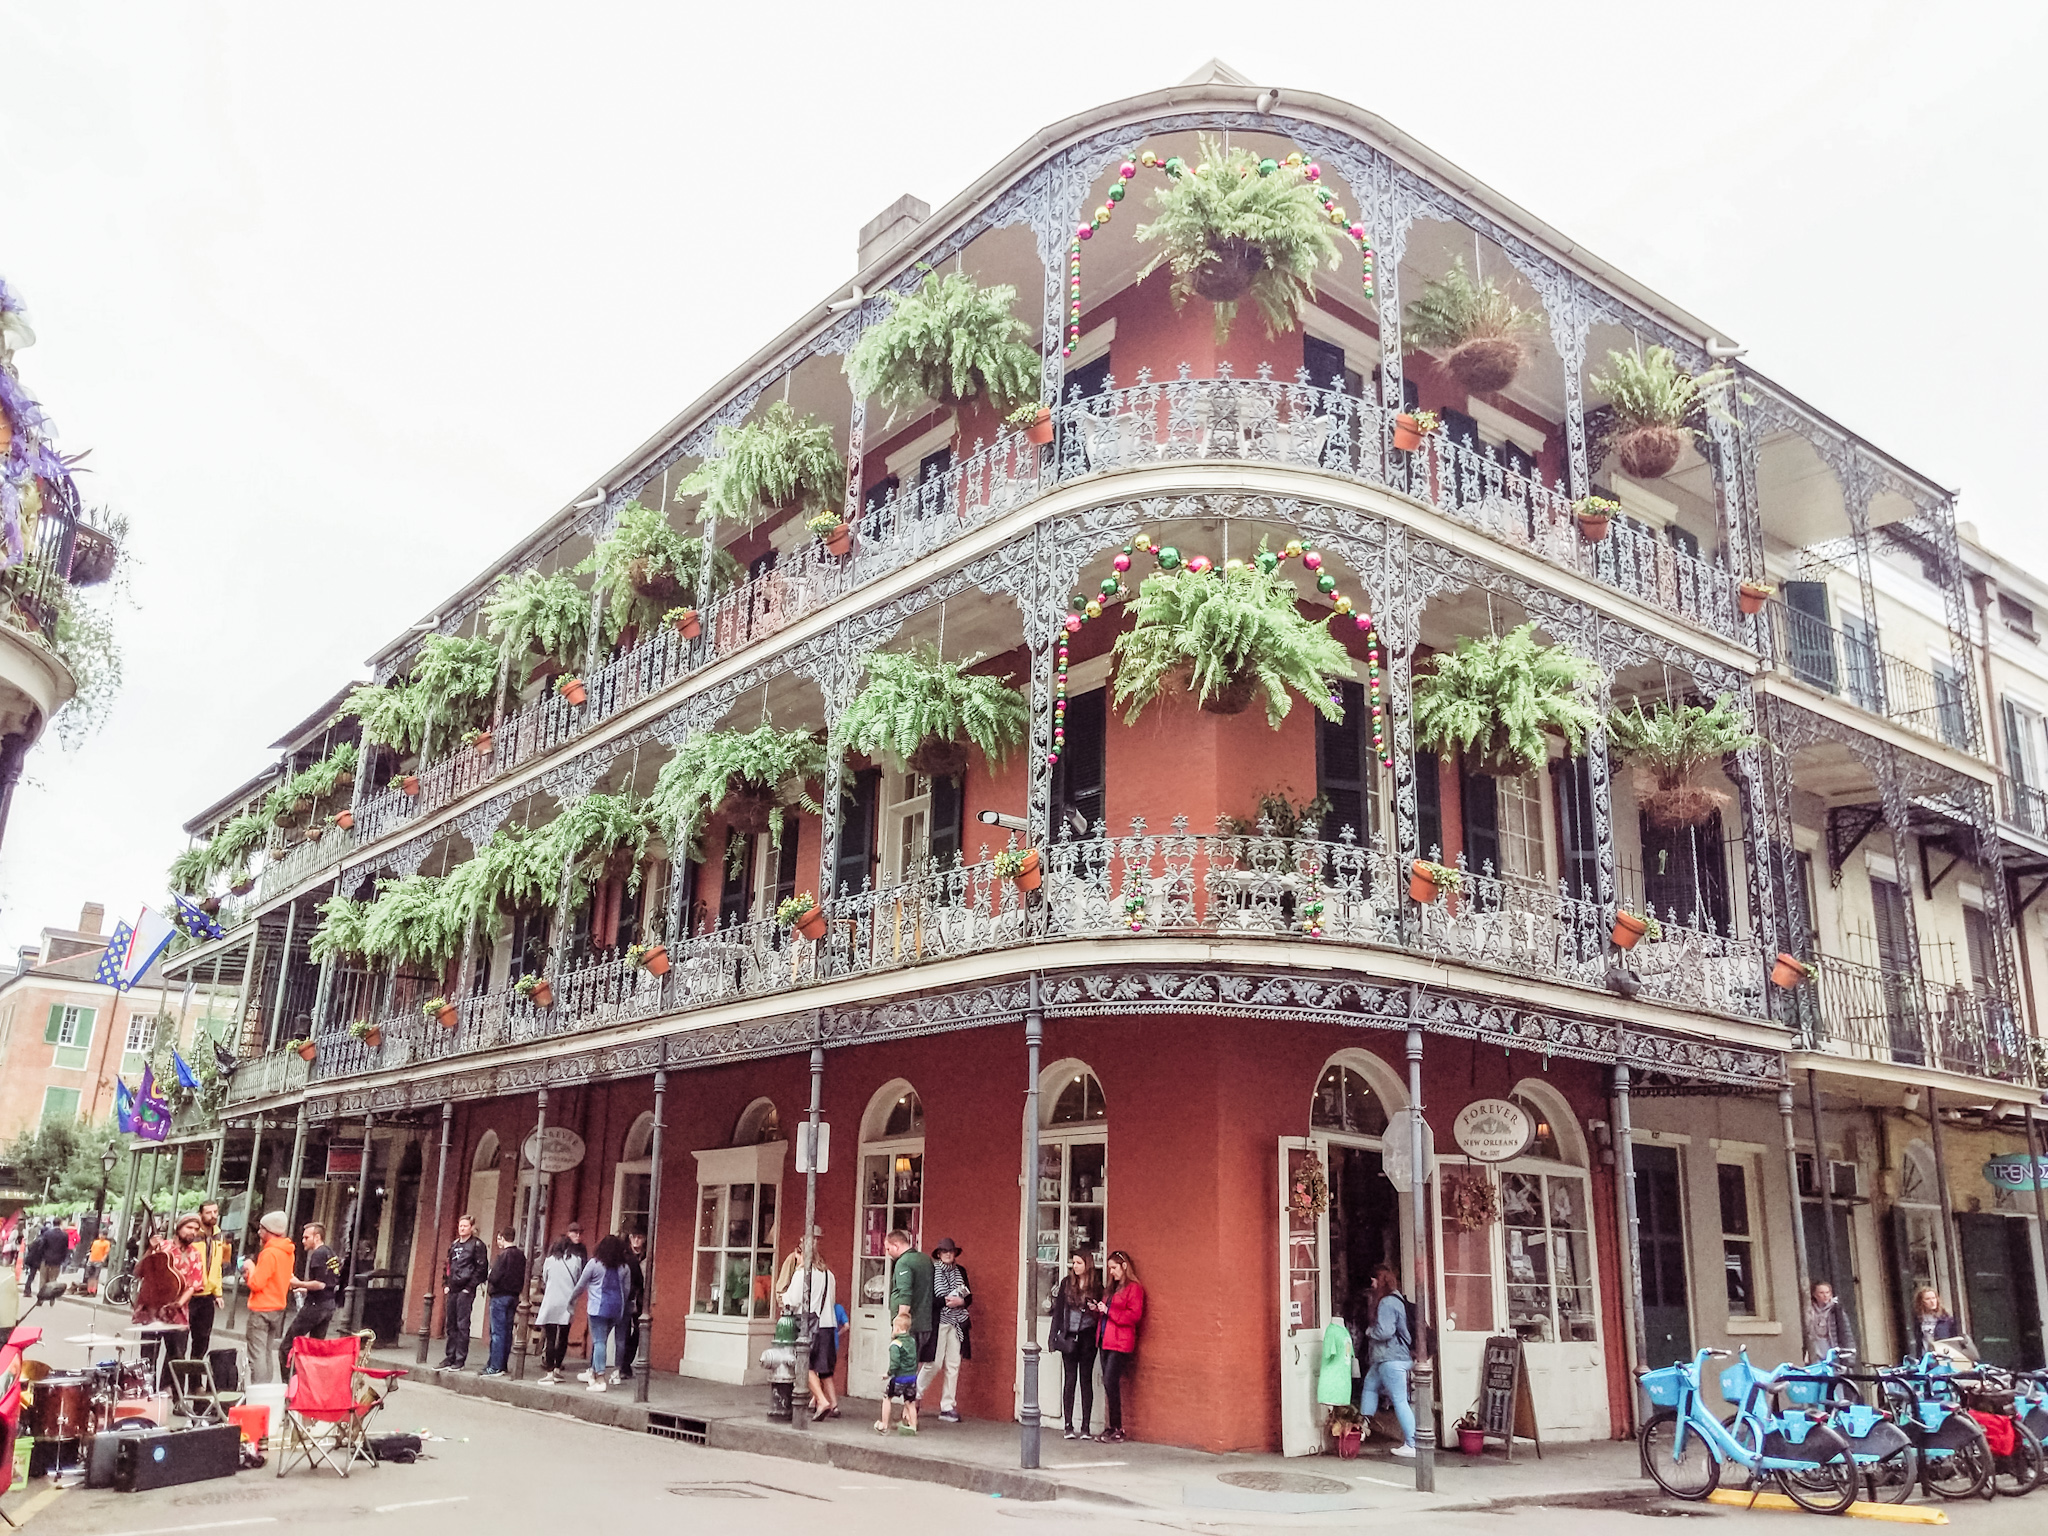 French Quarter - This district is full of stores, shoppes, food, and music. Highly recommend going on a tour to learn about the history, architecture, and how the city is still thriving. Easily walk-able.Went on a ghost tour of the Quarter, very cool.